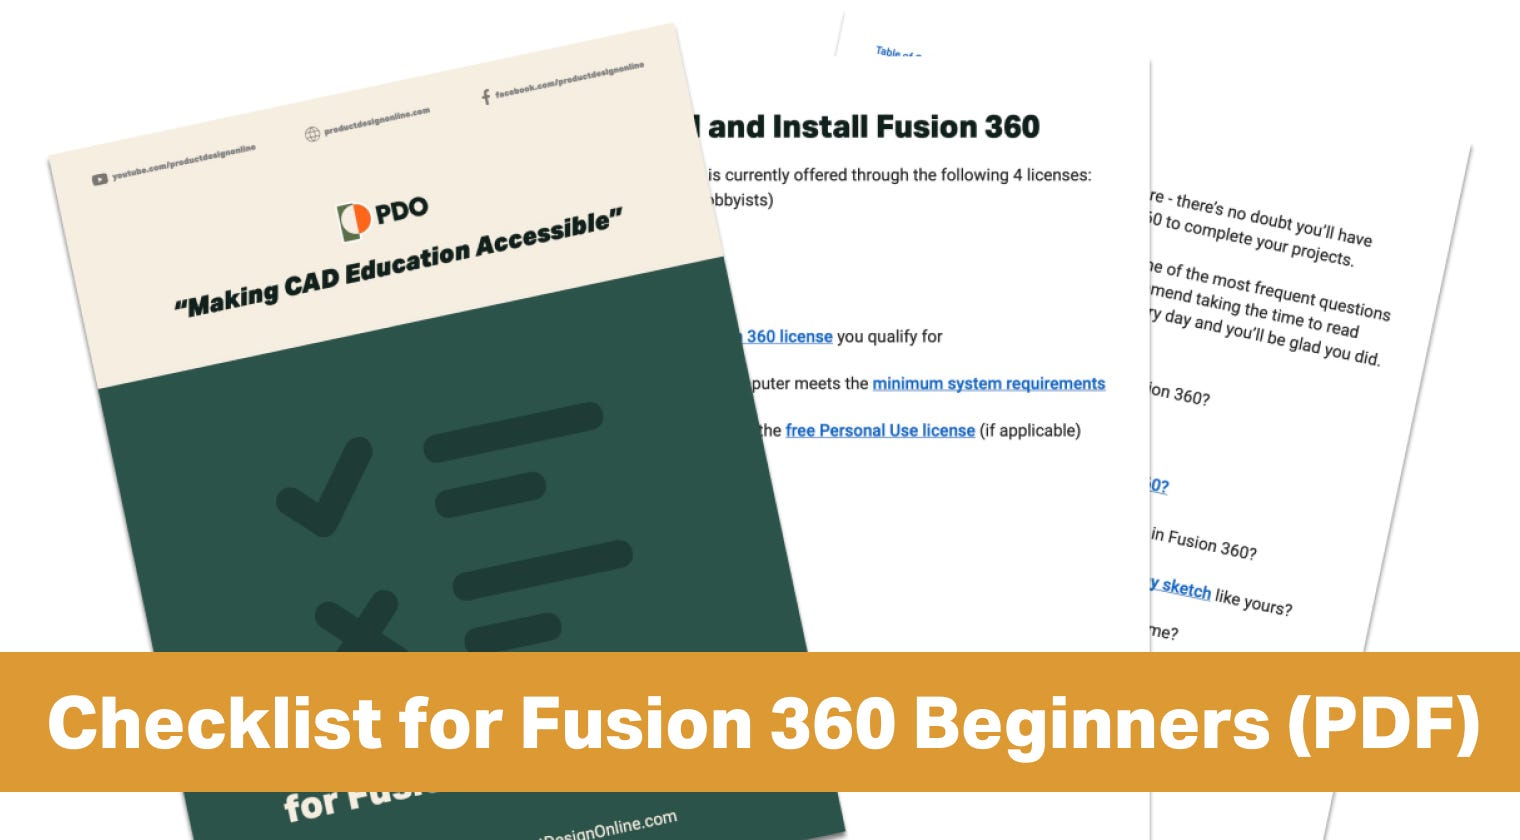 Ultimate Checklist for Fusion 360 Beginners